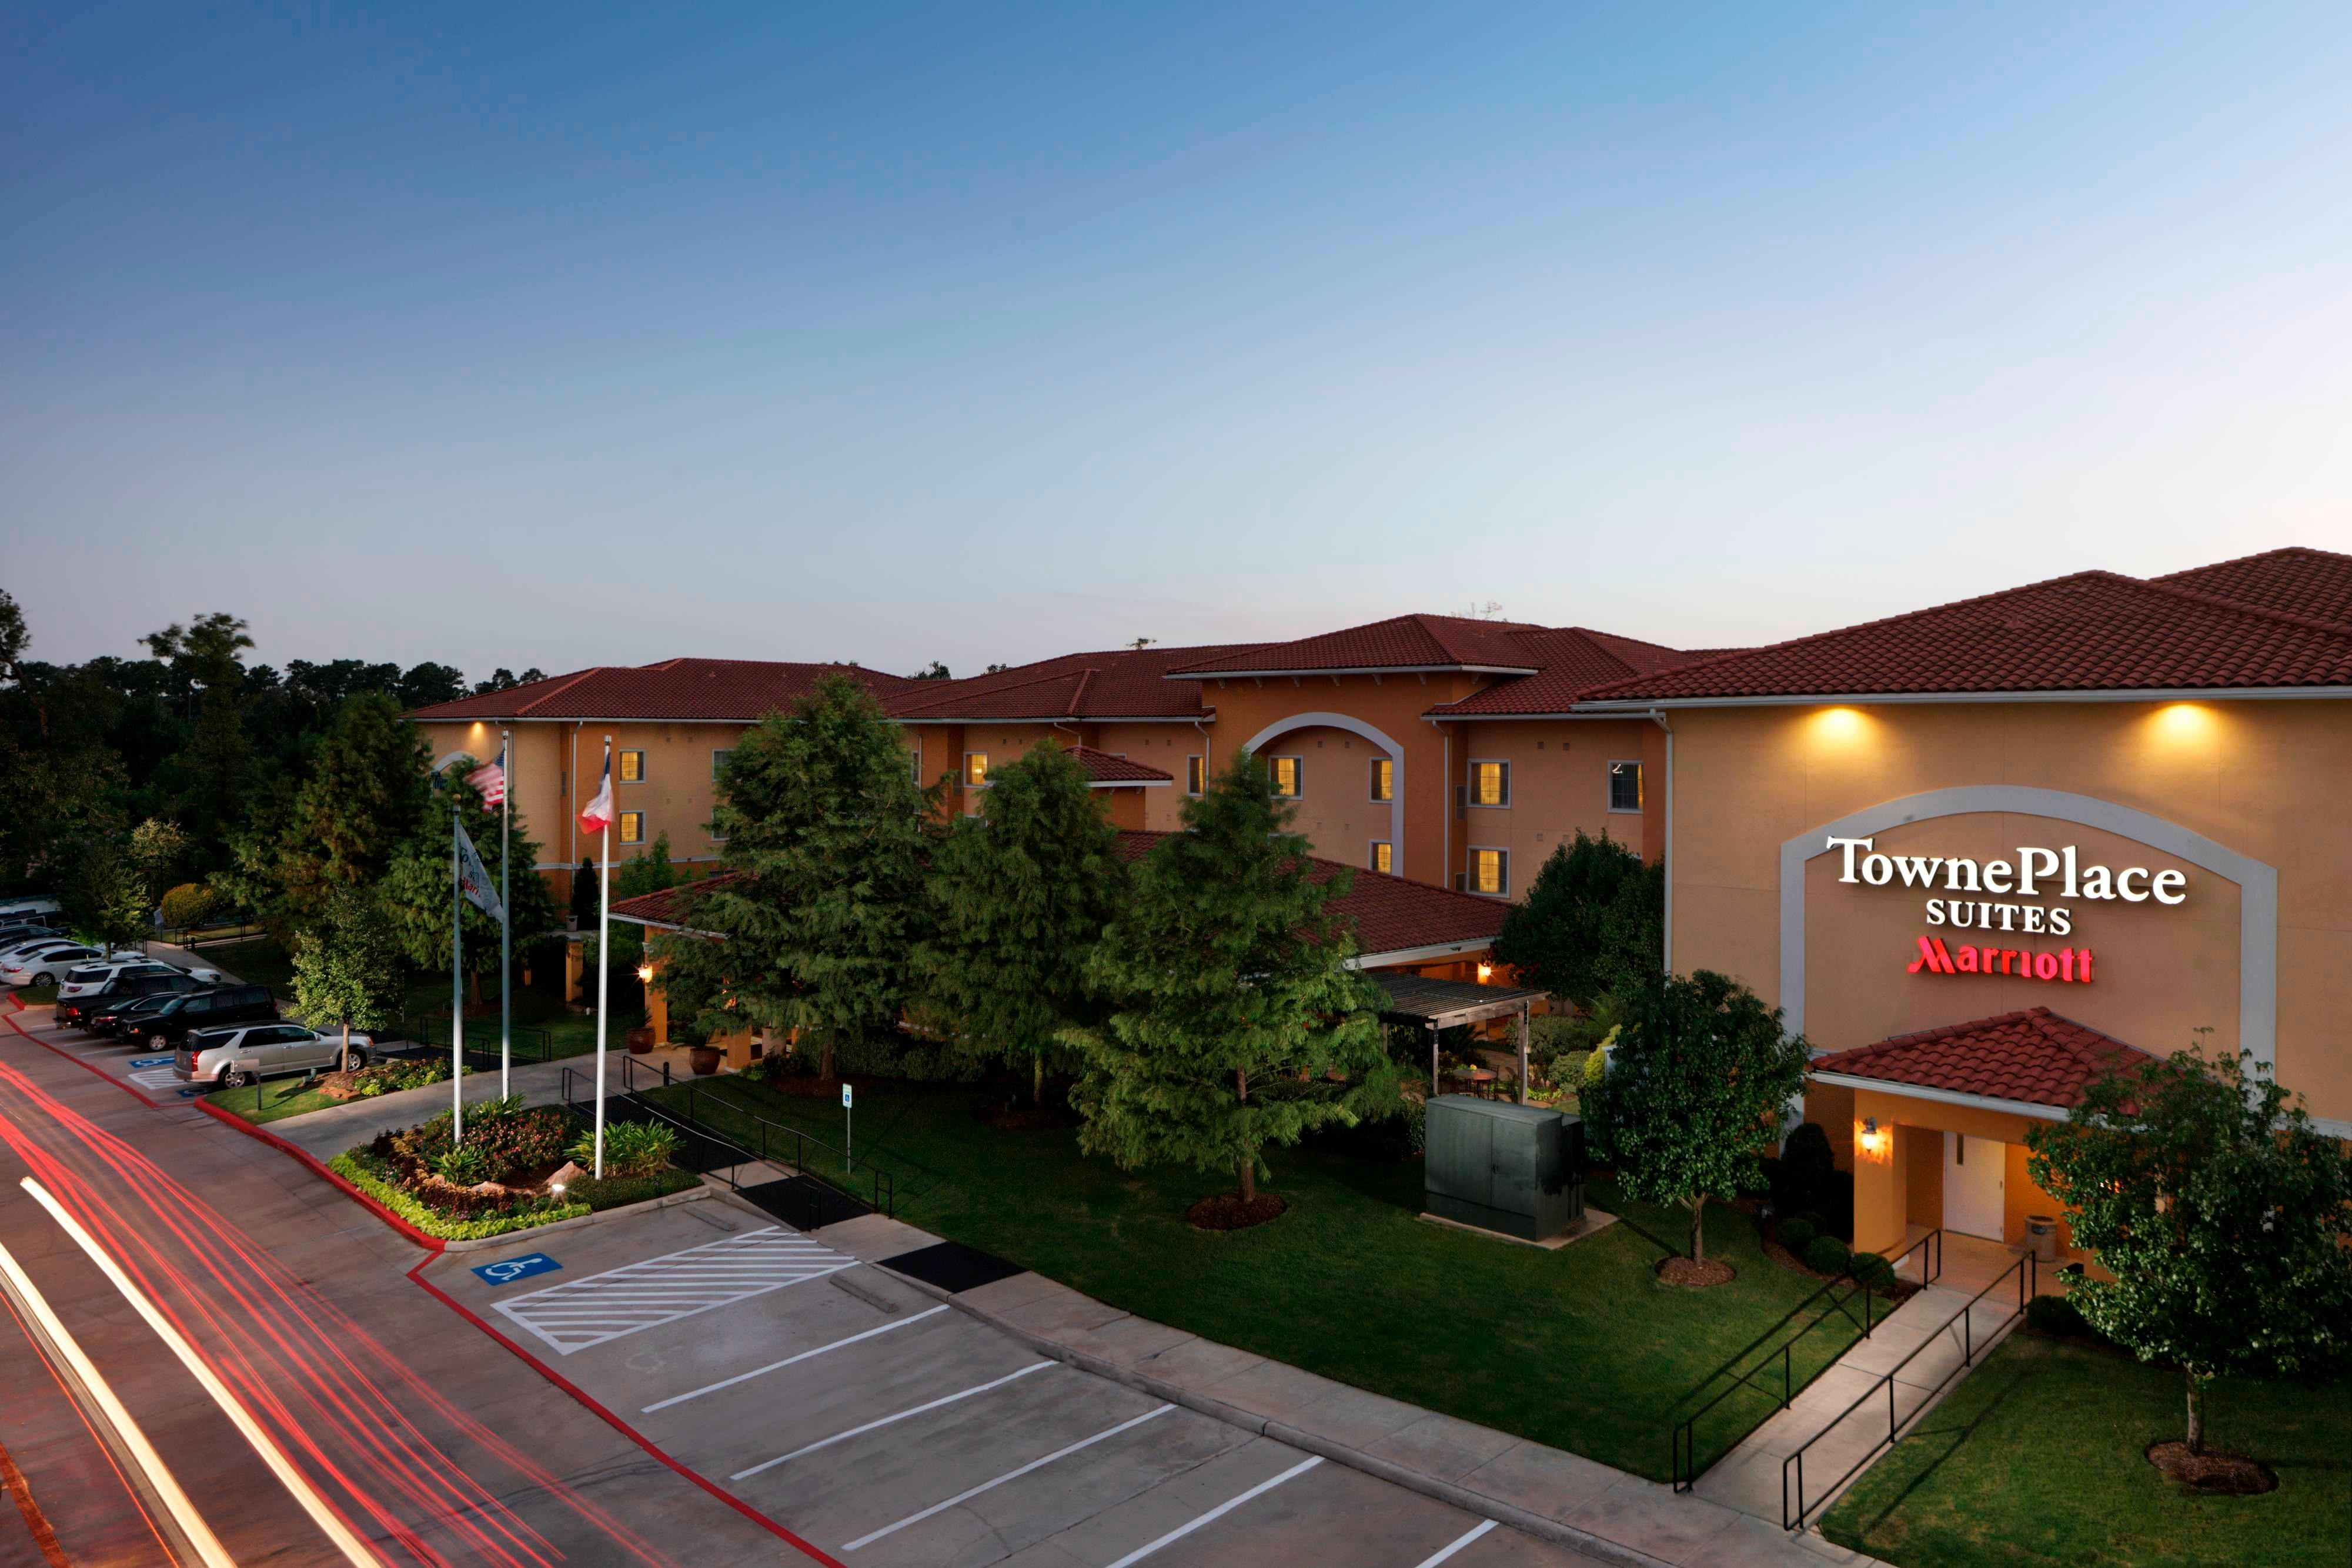 Hotels in Houston TX